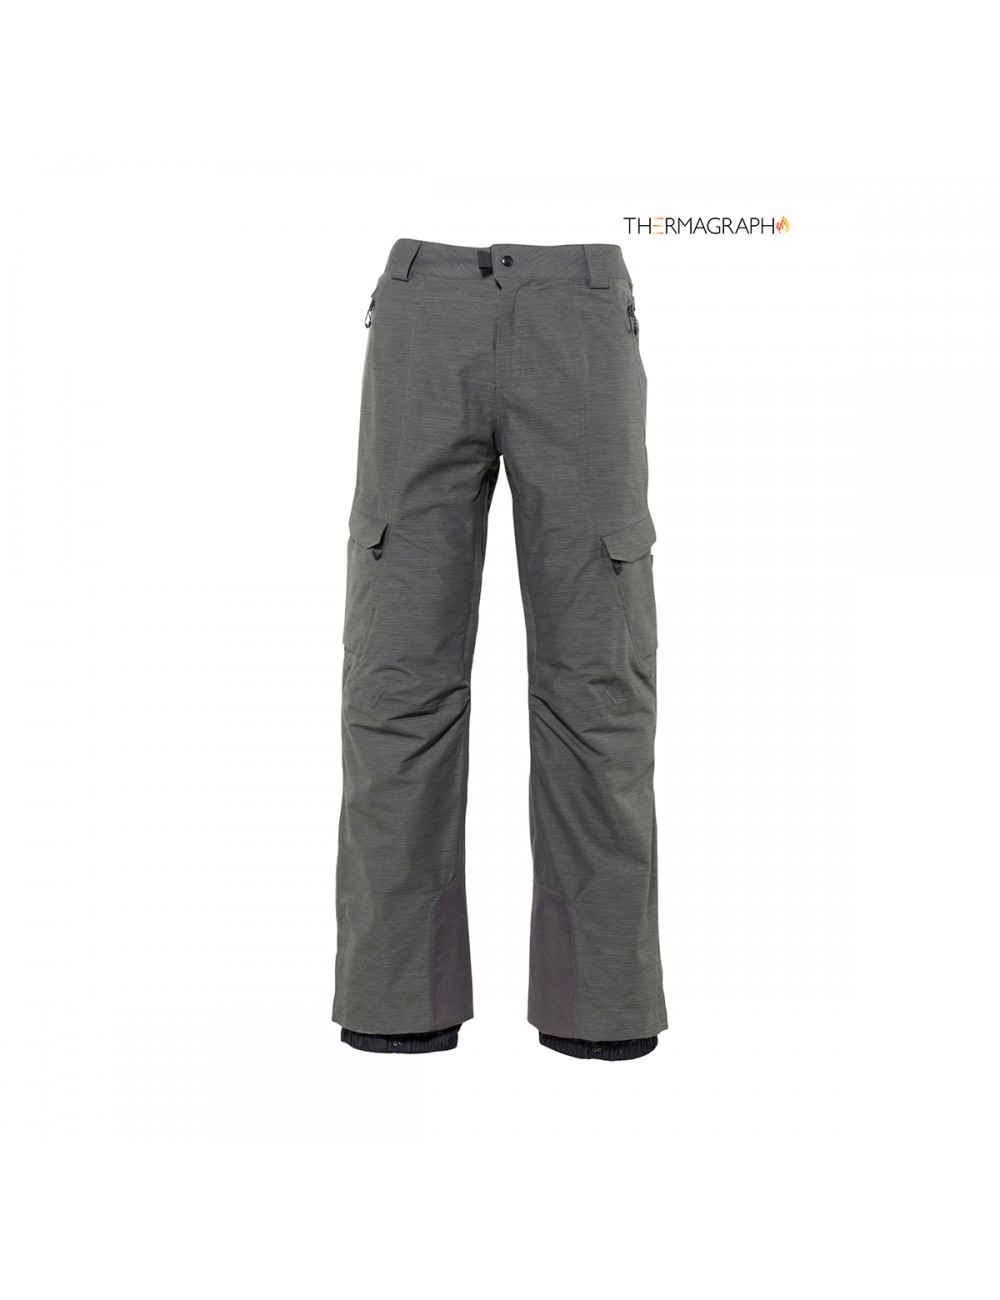 686 Quantum Thermograph Pant - Charcoal/Heather_13233